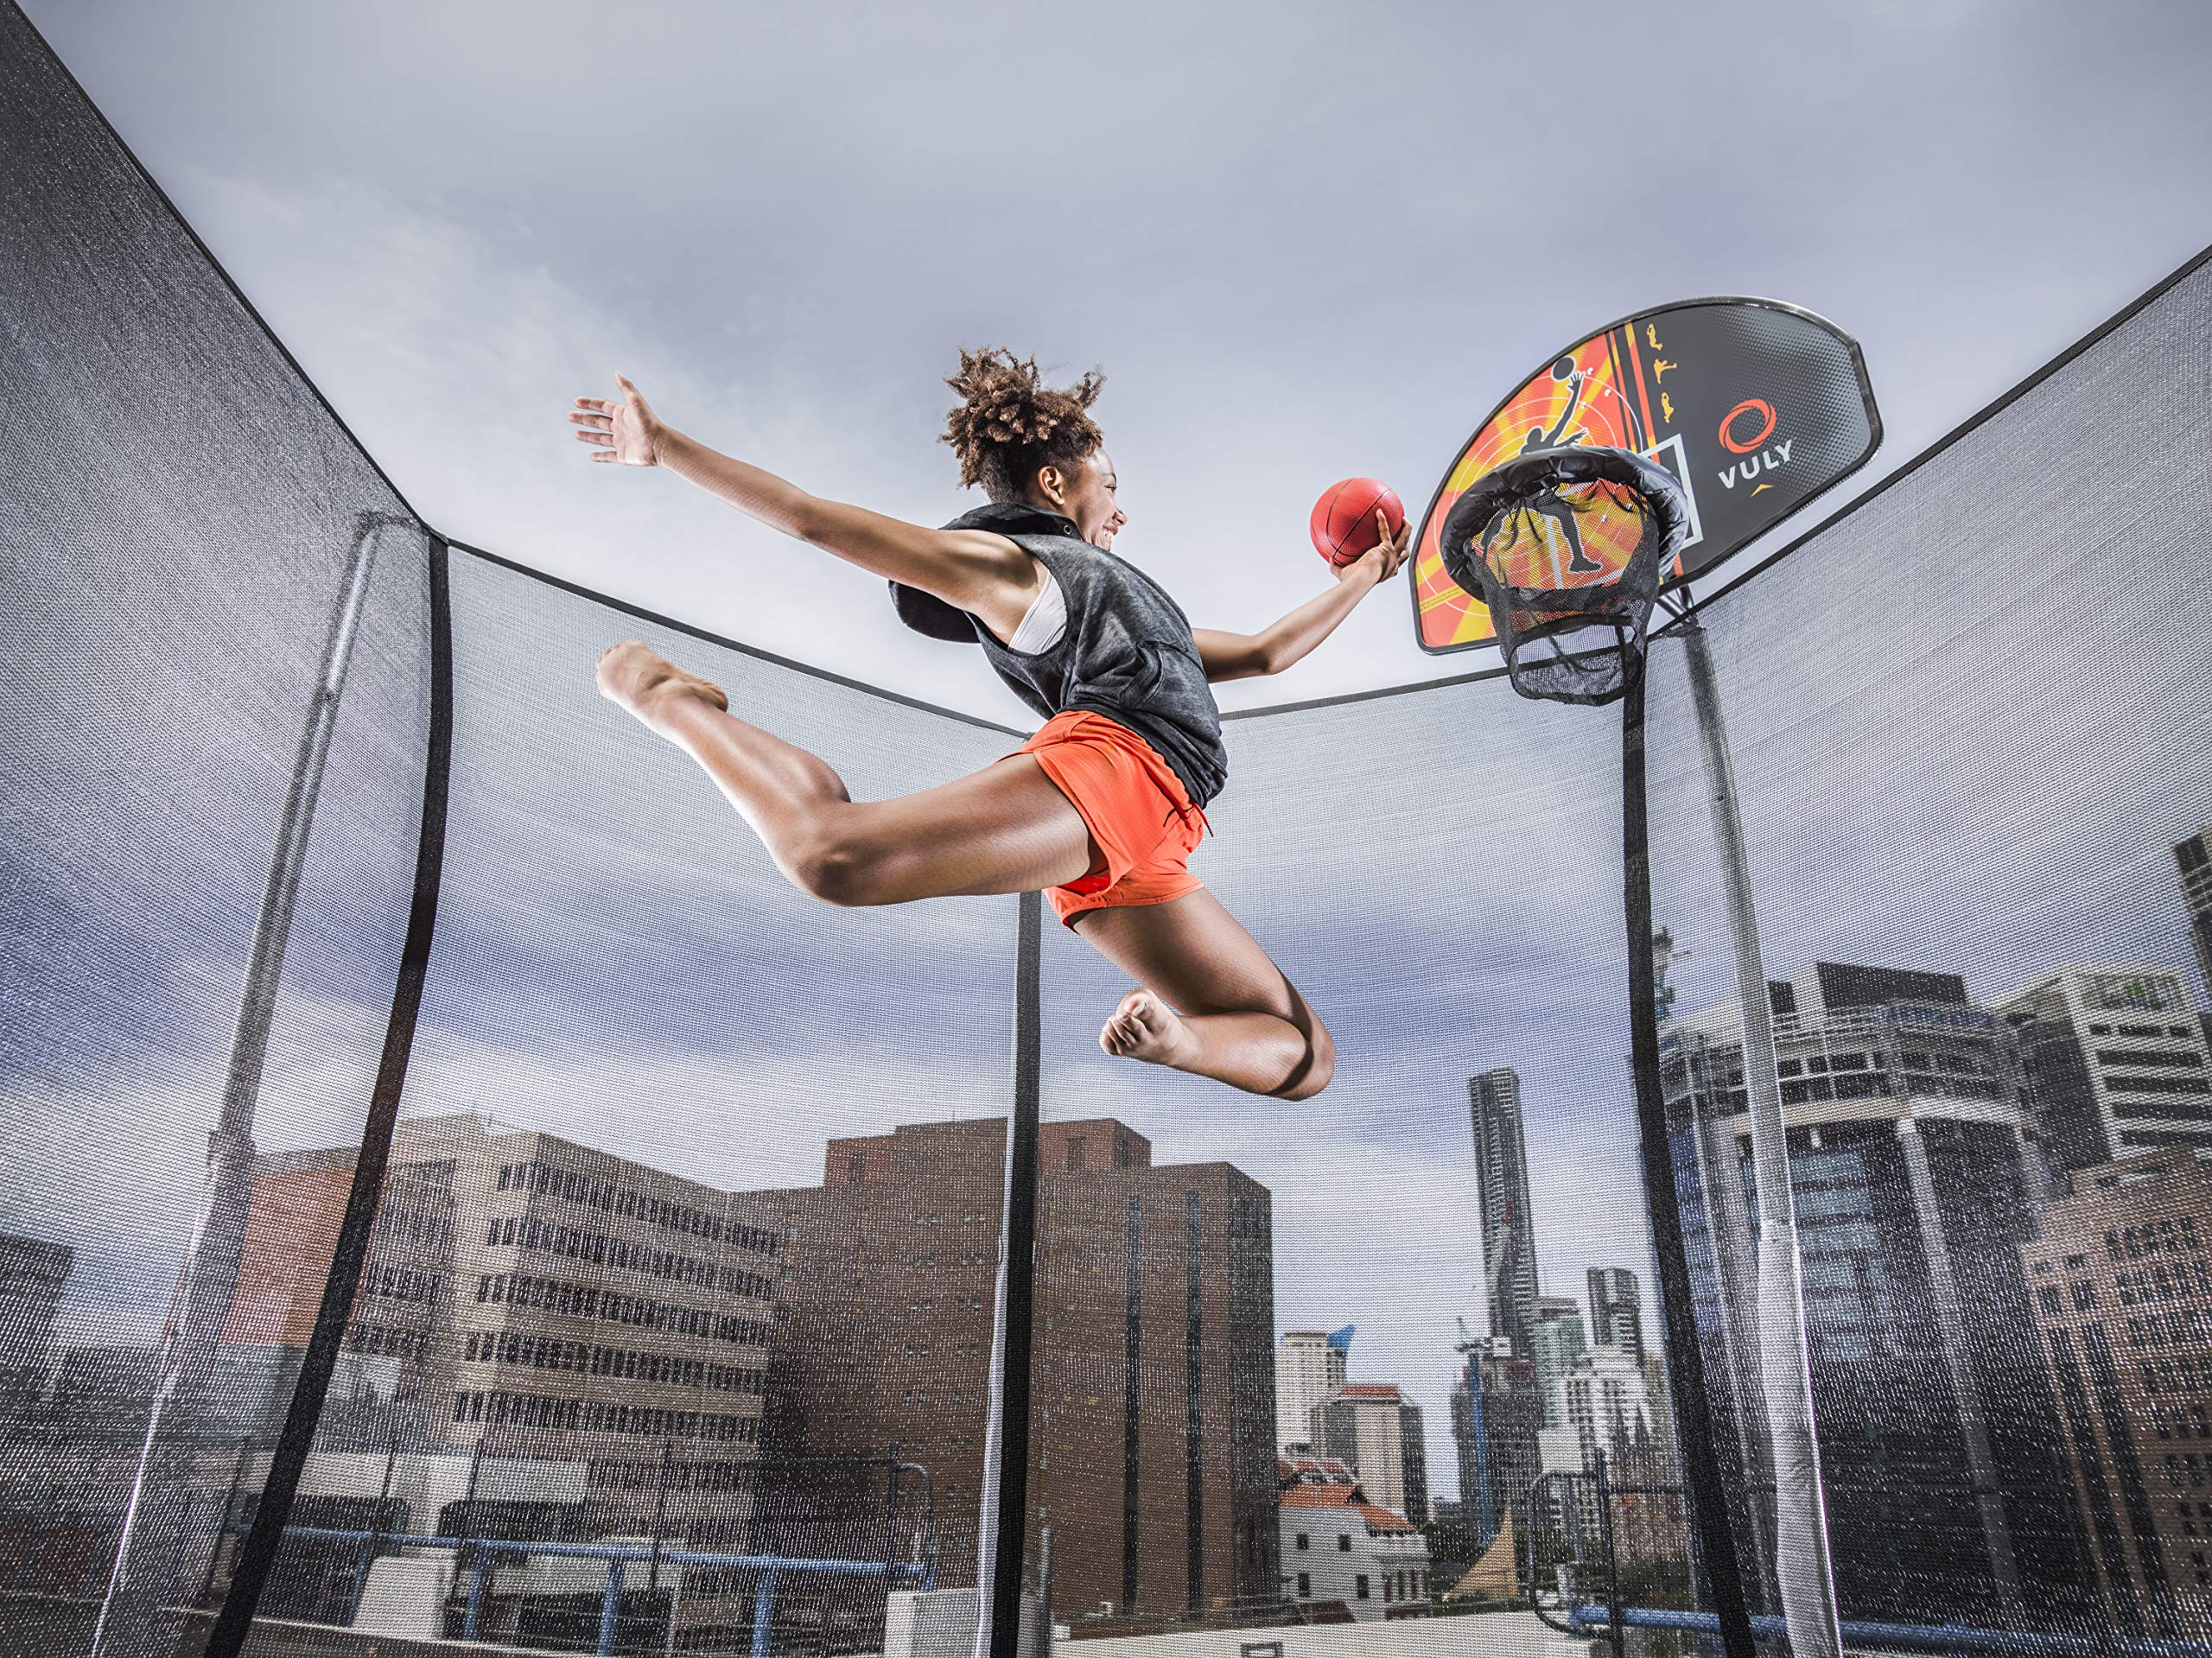 Vuly Basketball Hoop and Ball Set Compatible Trampolines 360 Swingsets by Vuly (Image #4)